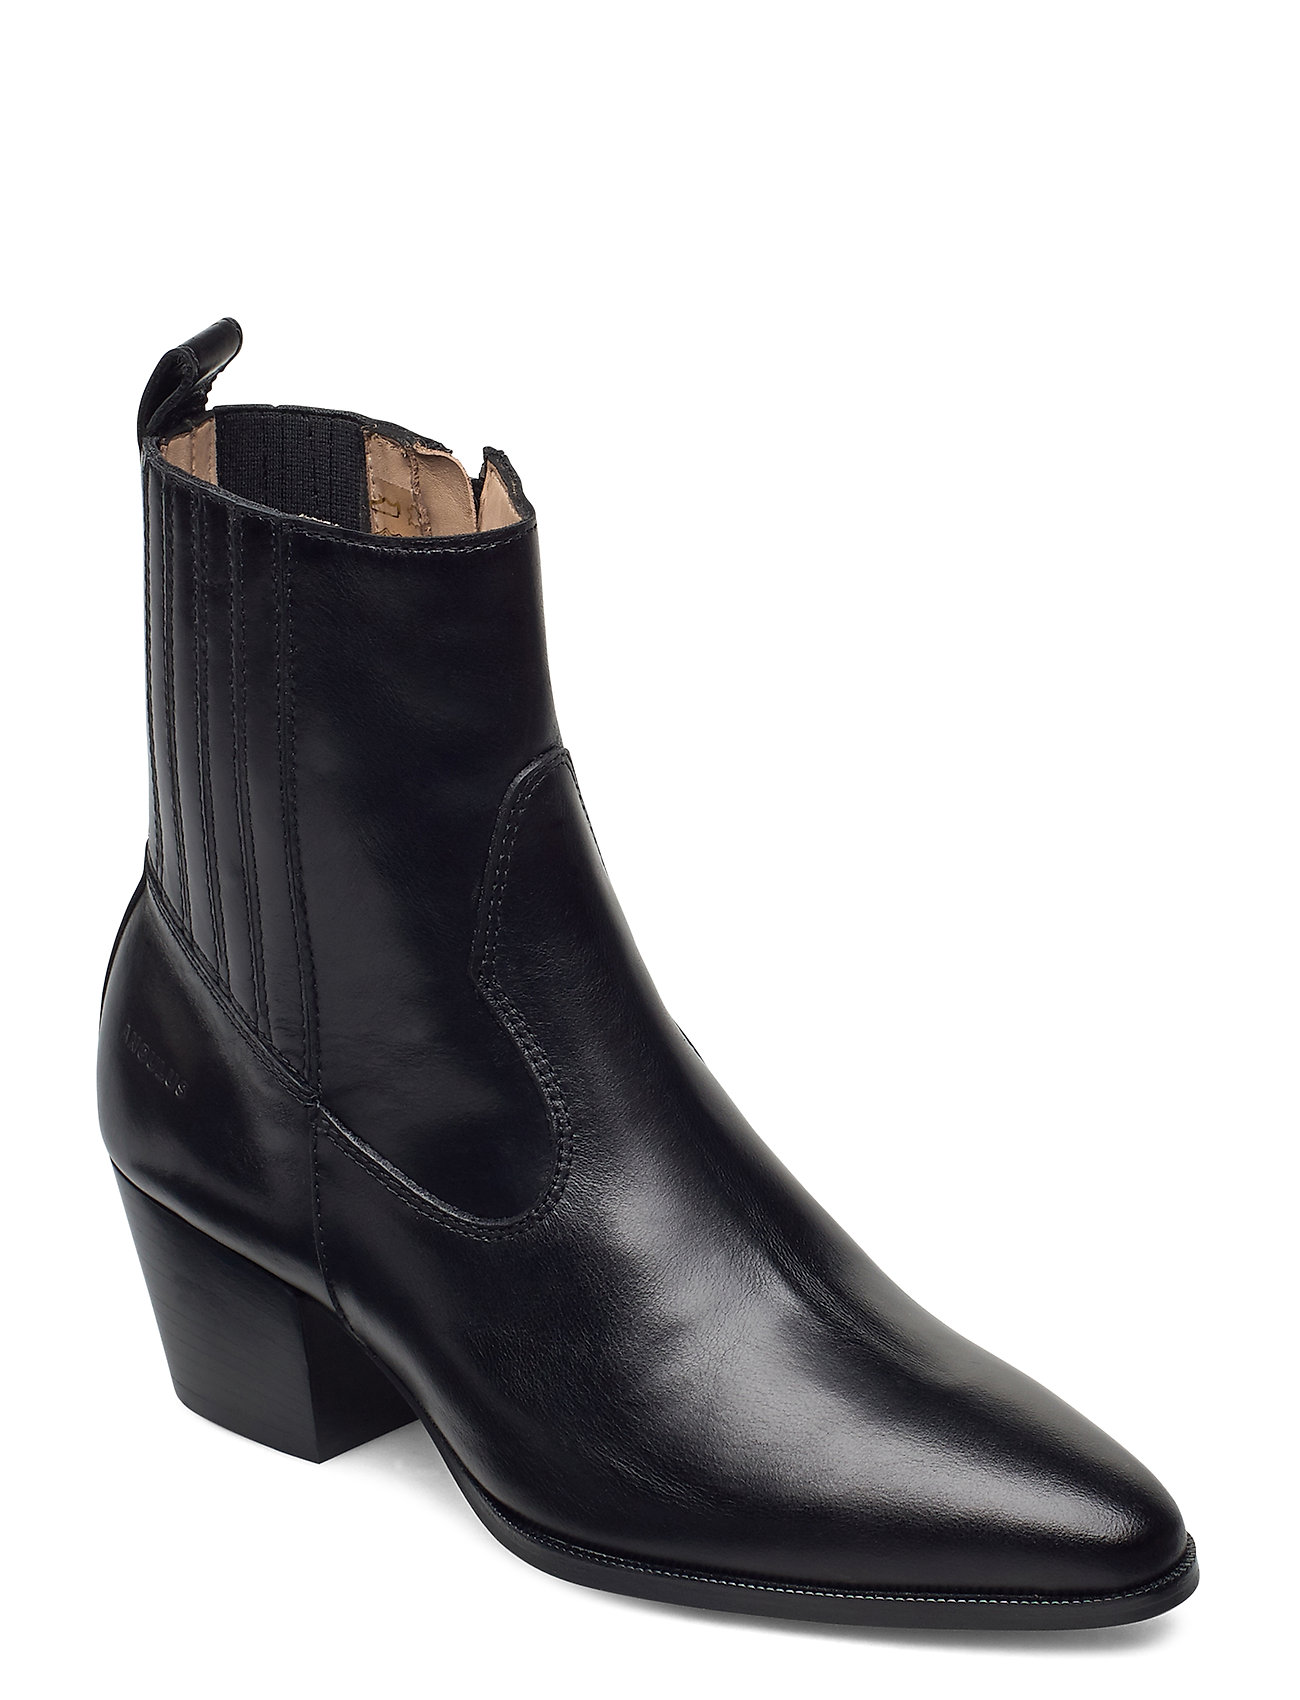 Image of Booties - Block Heel - With Elas Shoes Boots Ankle Boots Ankle Boot - Heel Sort ANGULUS (3440209317)